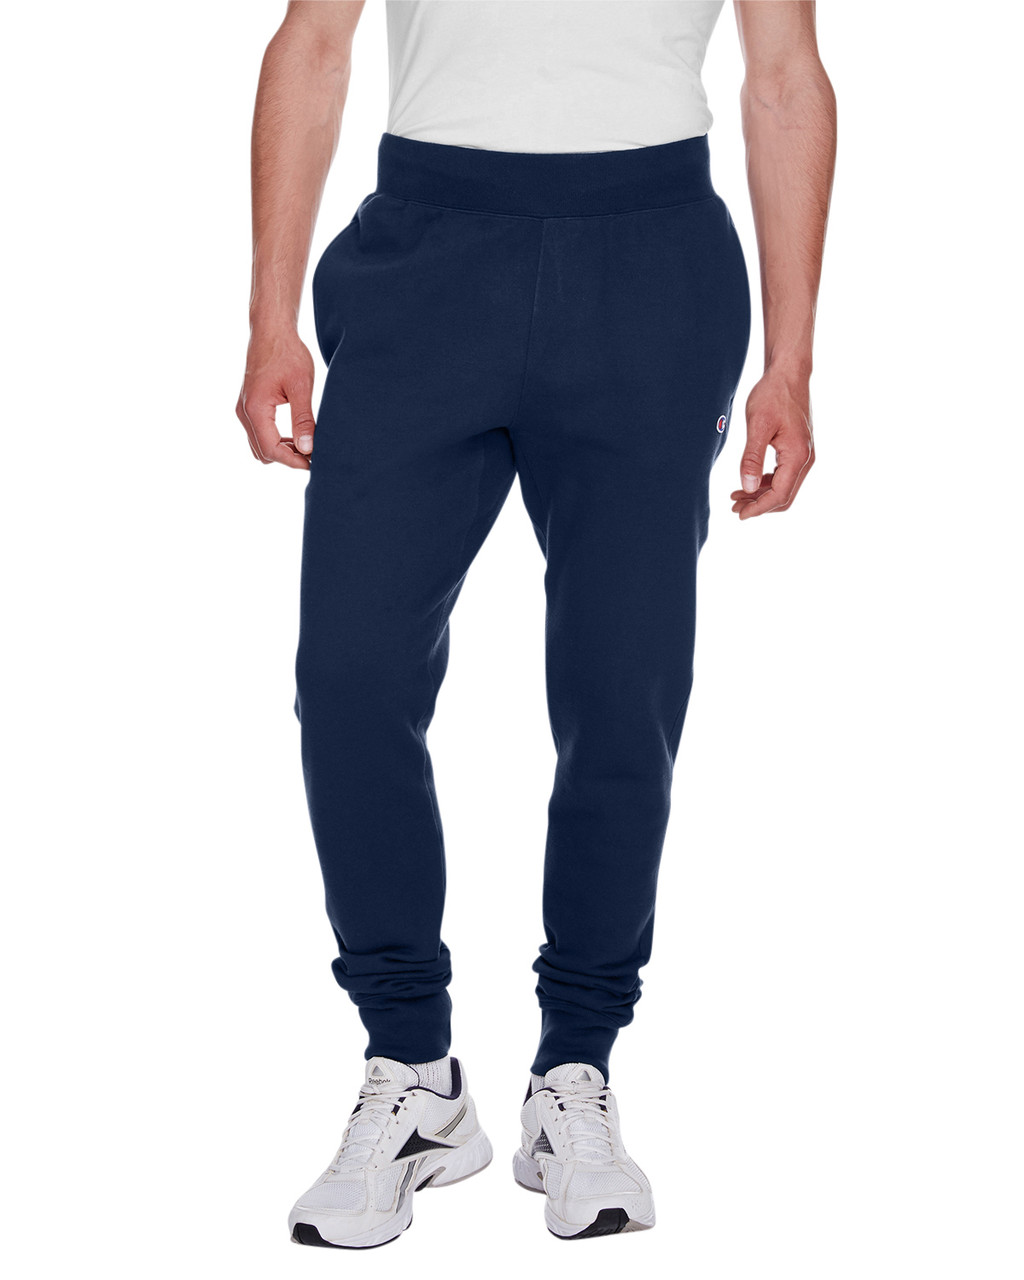 Navy - RW25 Champion Men's Reverse Weave Jogger Pant | BlankClothing.ca